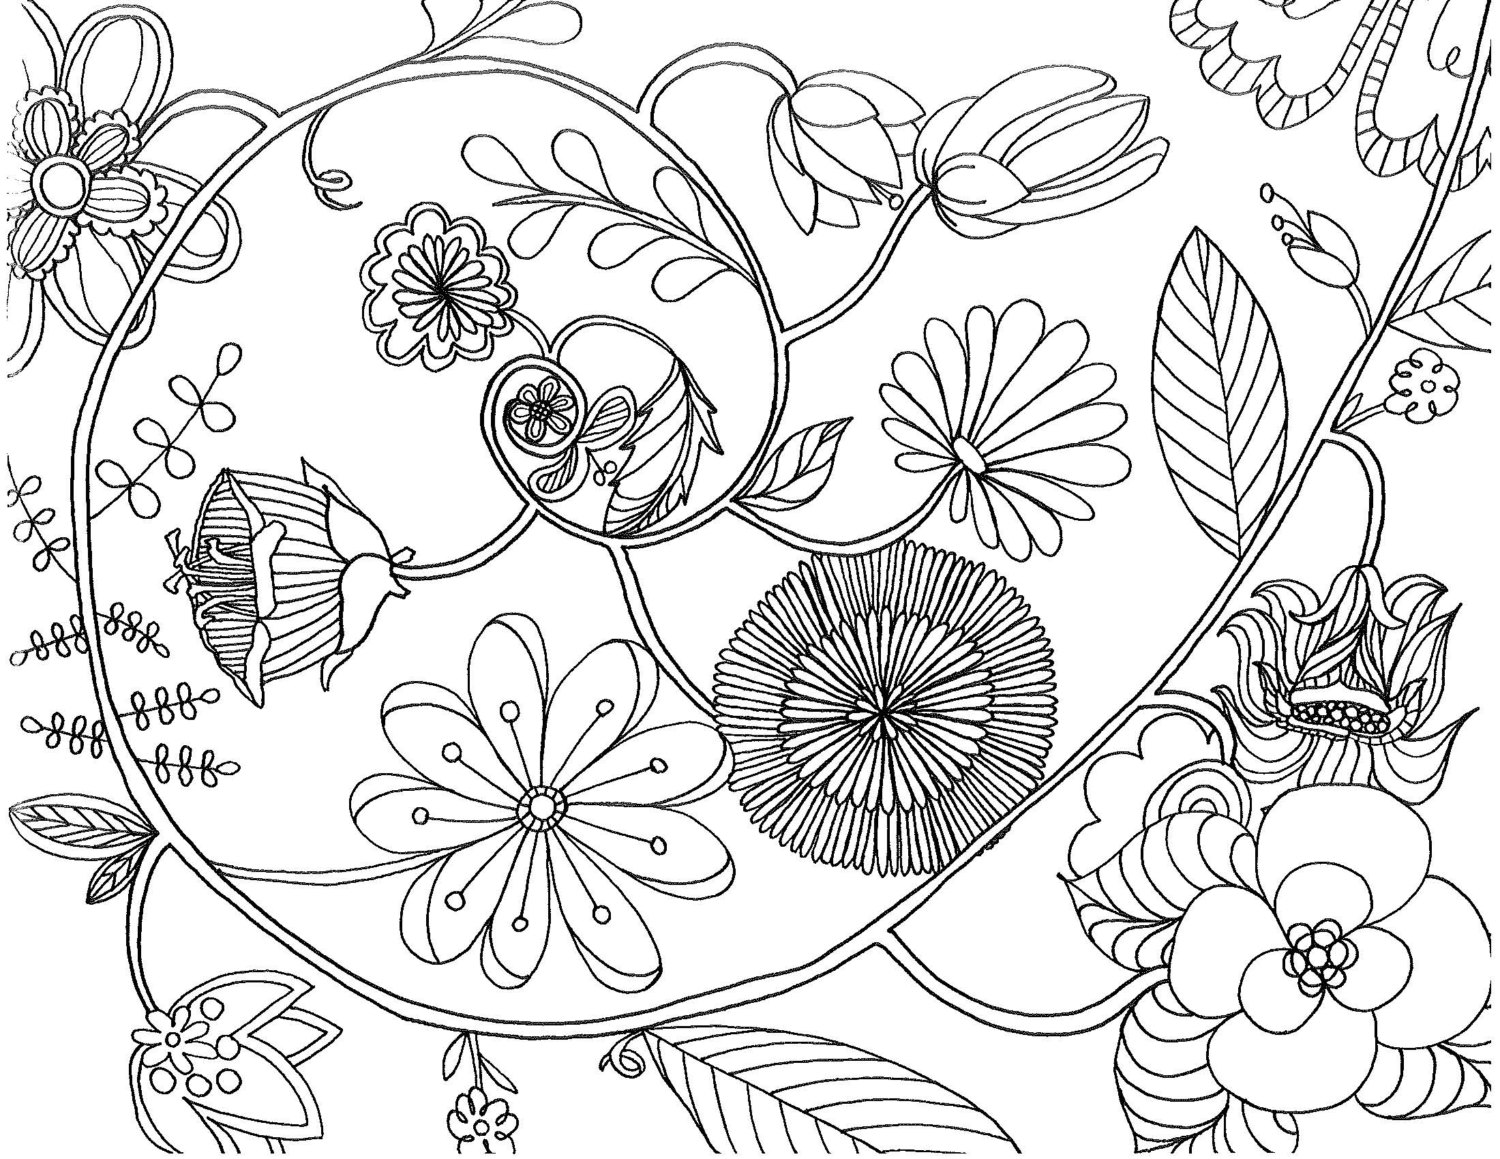 spiral pictures to color spiral coloring download spiral coloring for free 2019 color to spiral pictures